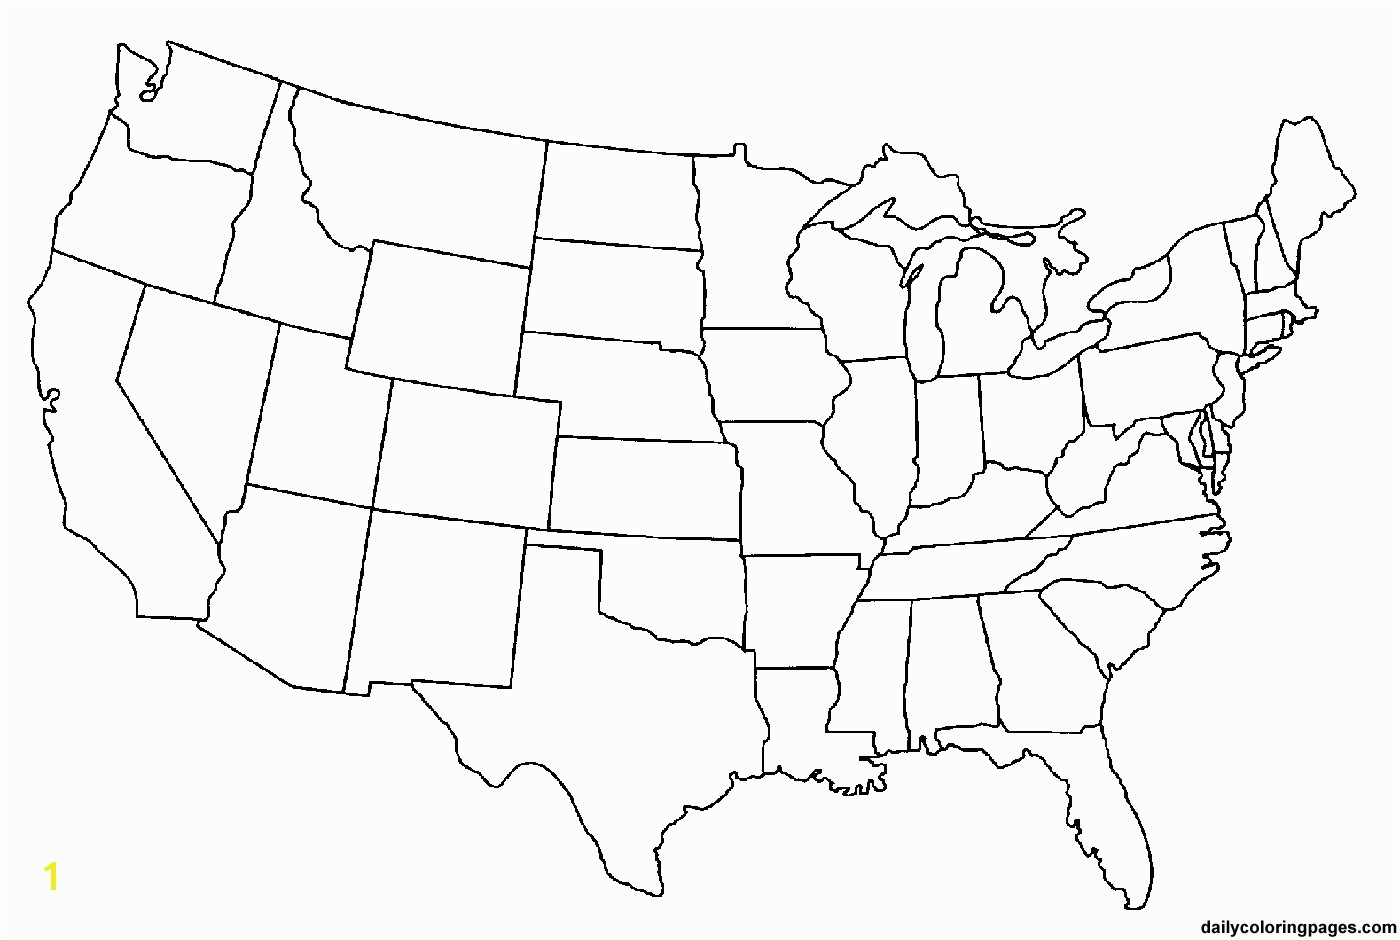 us map coloring sheet successful united states coloring sheet easy map usa page 926